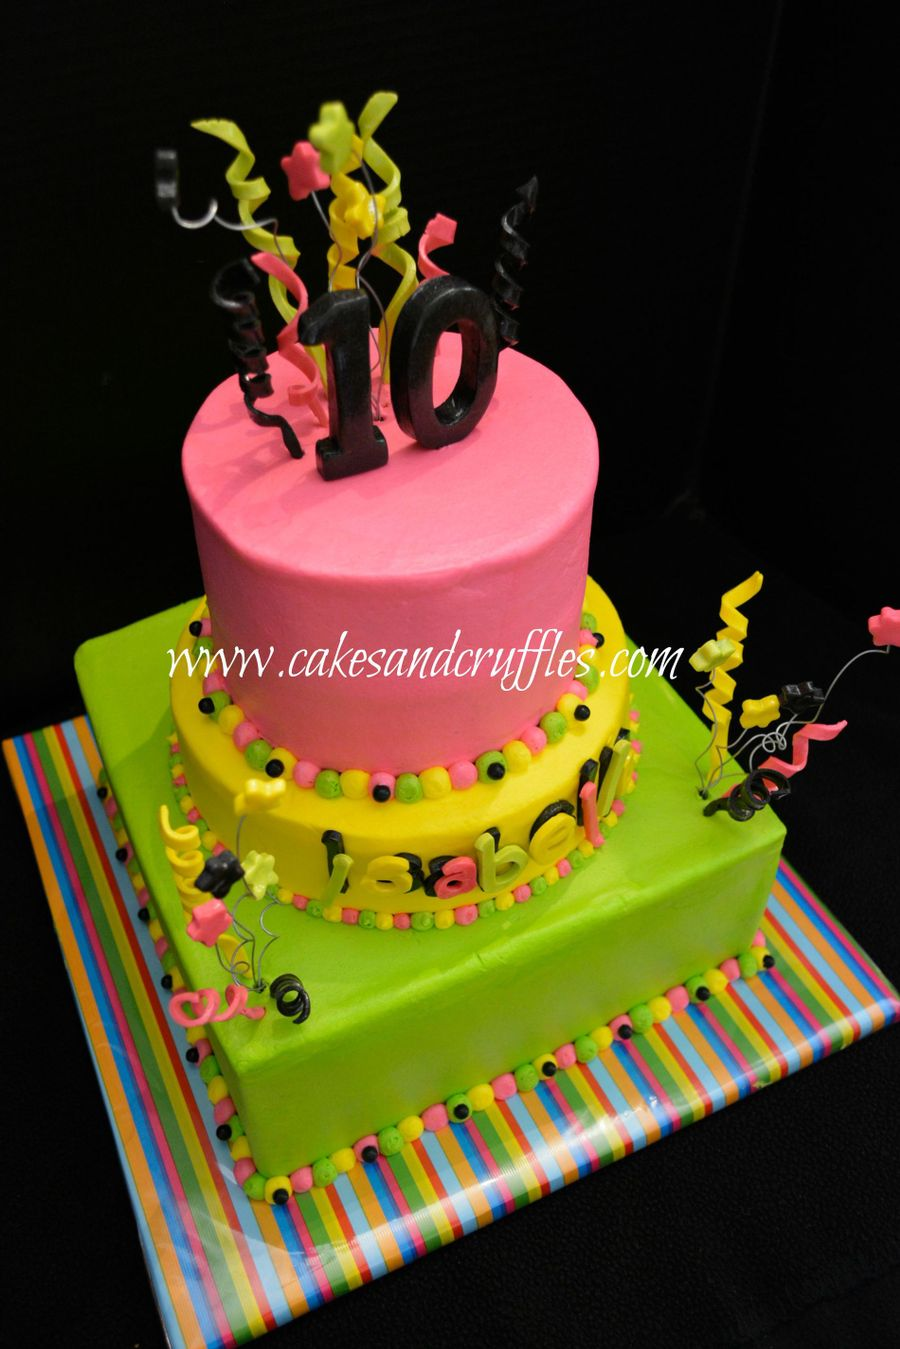 Cake Ideas For Glow In The Dark Party